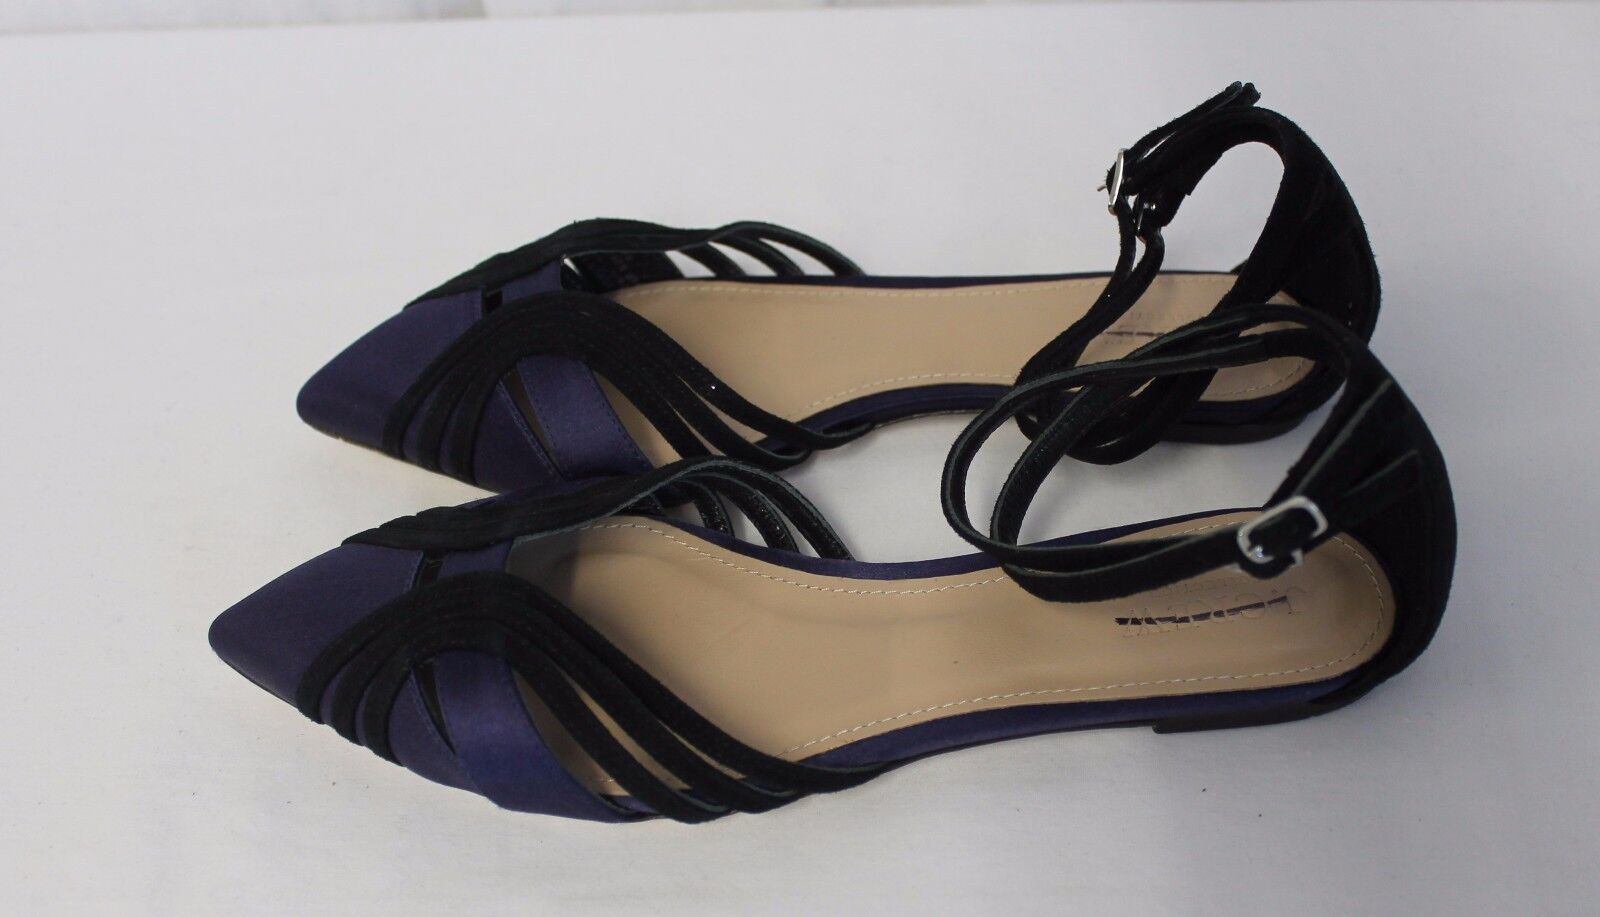 J CREW COLLECTION SUEDE AND SATIN ANKLE STRAP FLATS NAVY SIZE 6.5 E4670  198